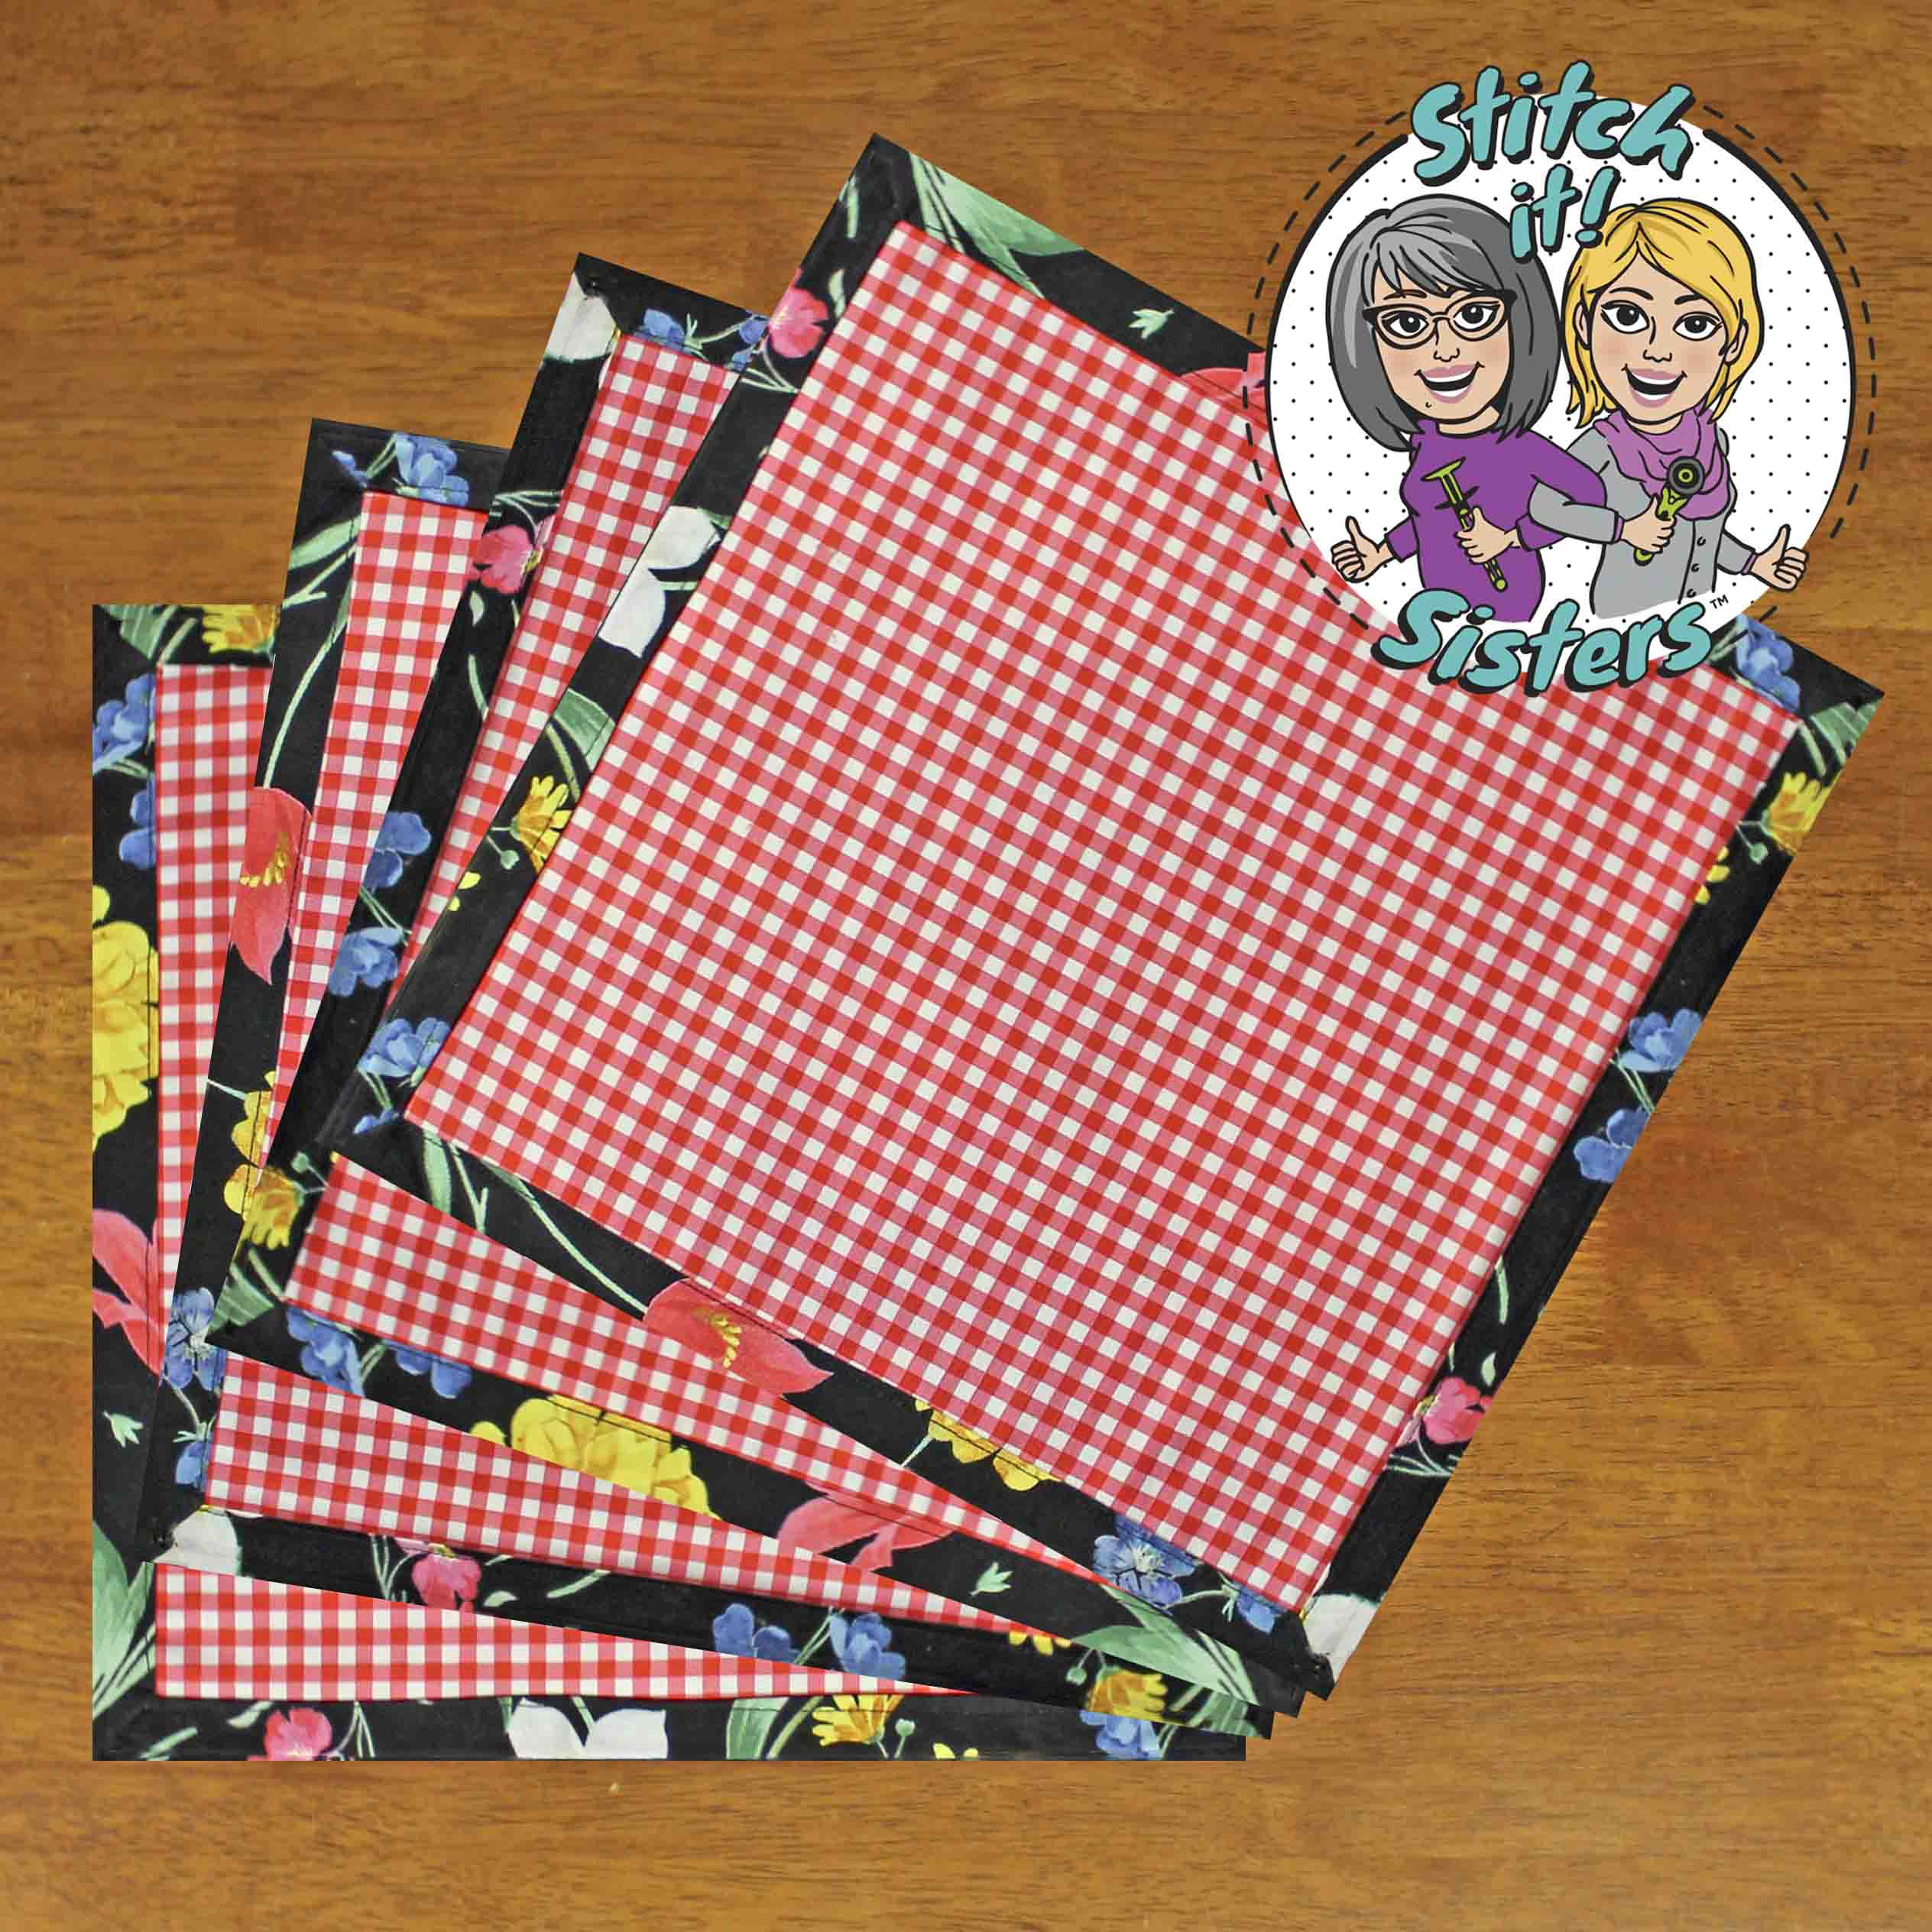 Make No-Hassle Napkins as Seen on Stitch it! Sisters by Nancy Zieman Productions